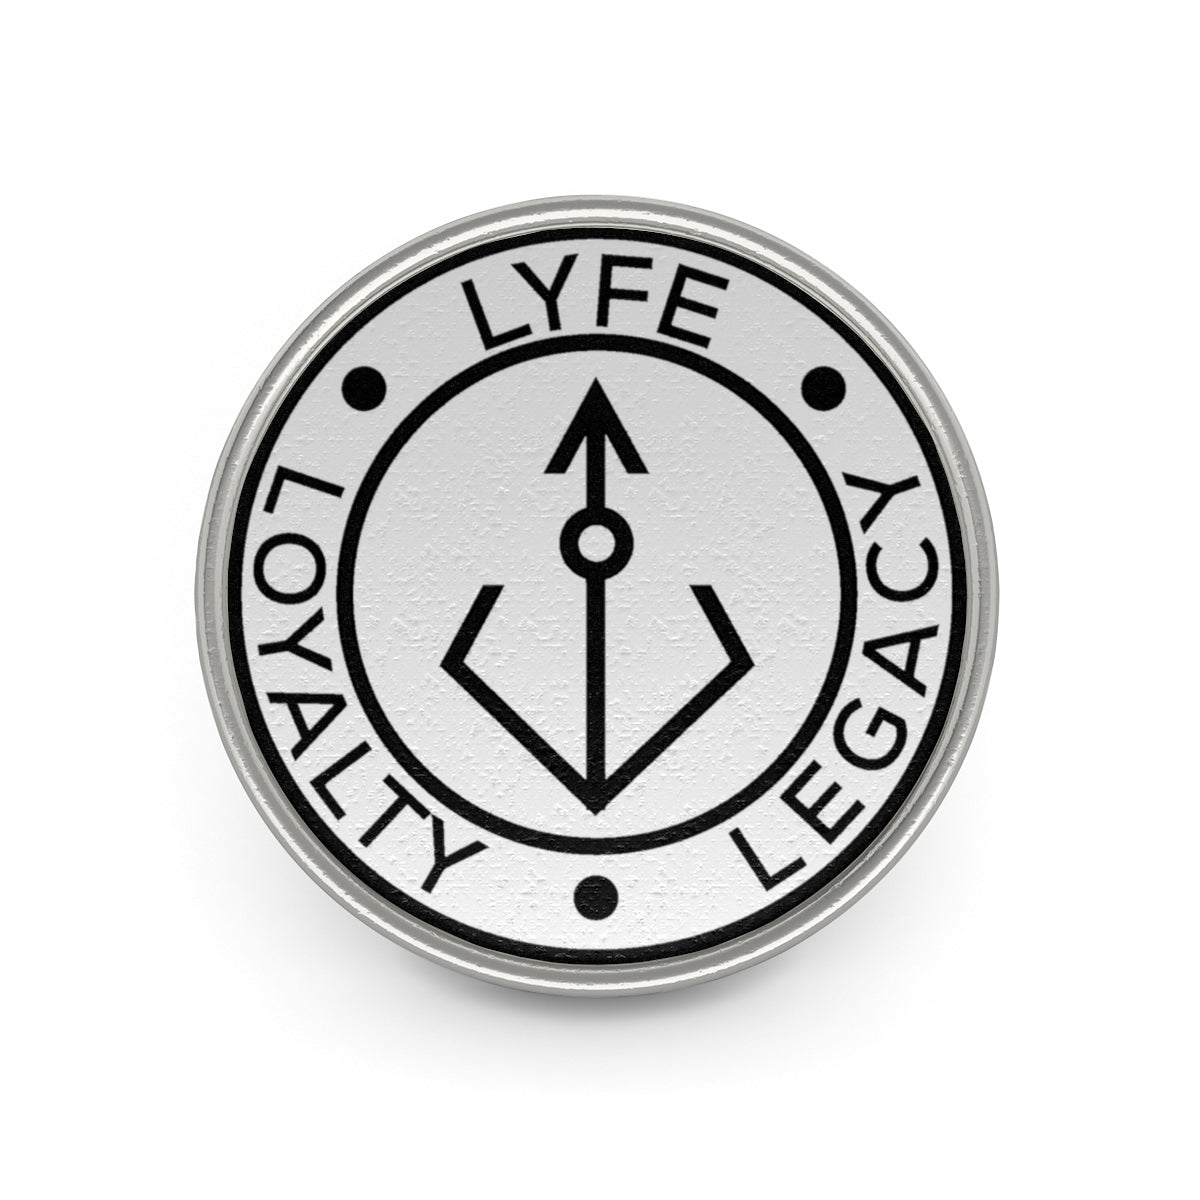 Loyalty Lyfe Legacy Metal Pin